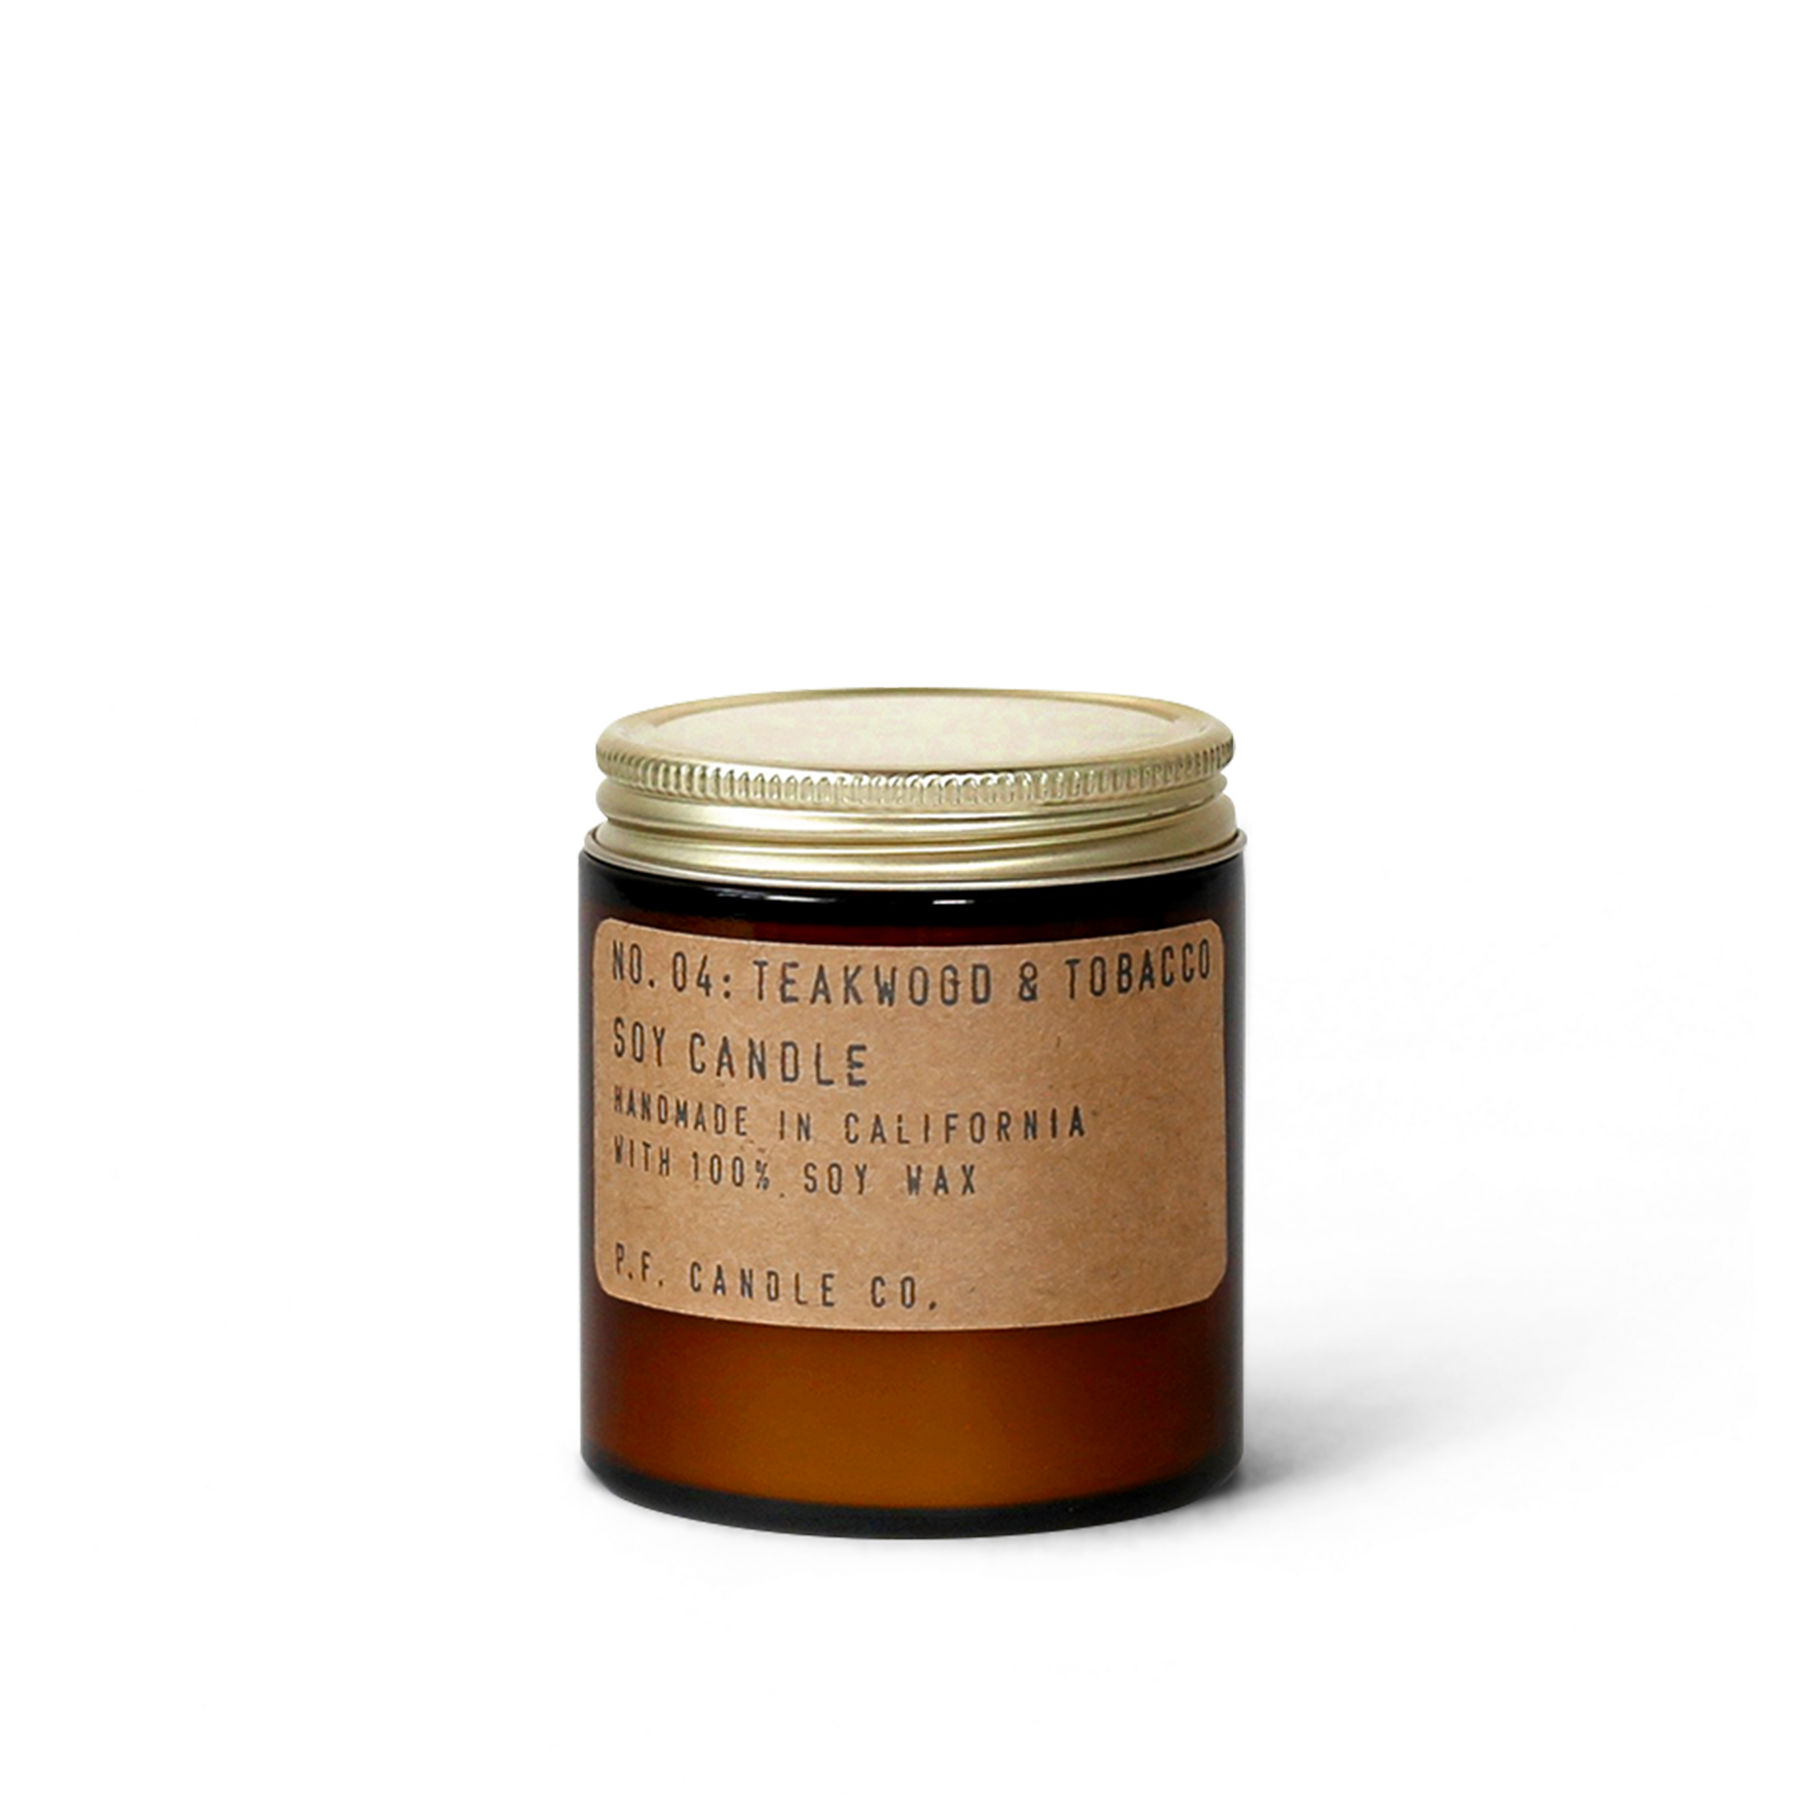 P.F. Candle Co. - Teakwood & Tobacco - 3.5 oz Mini Soy Candle